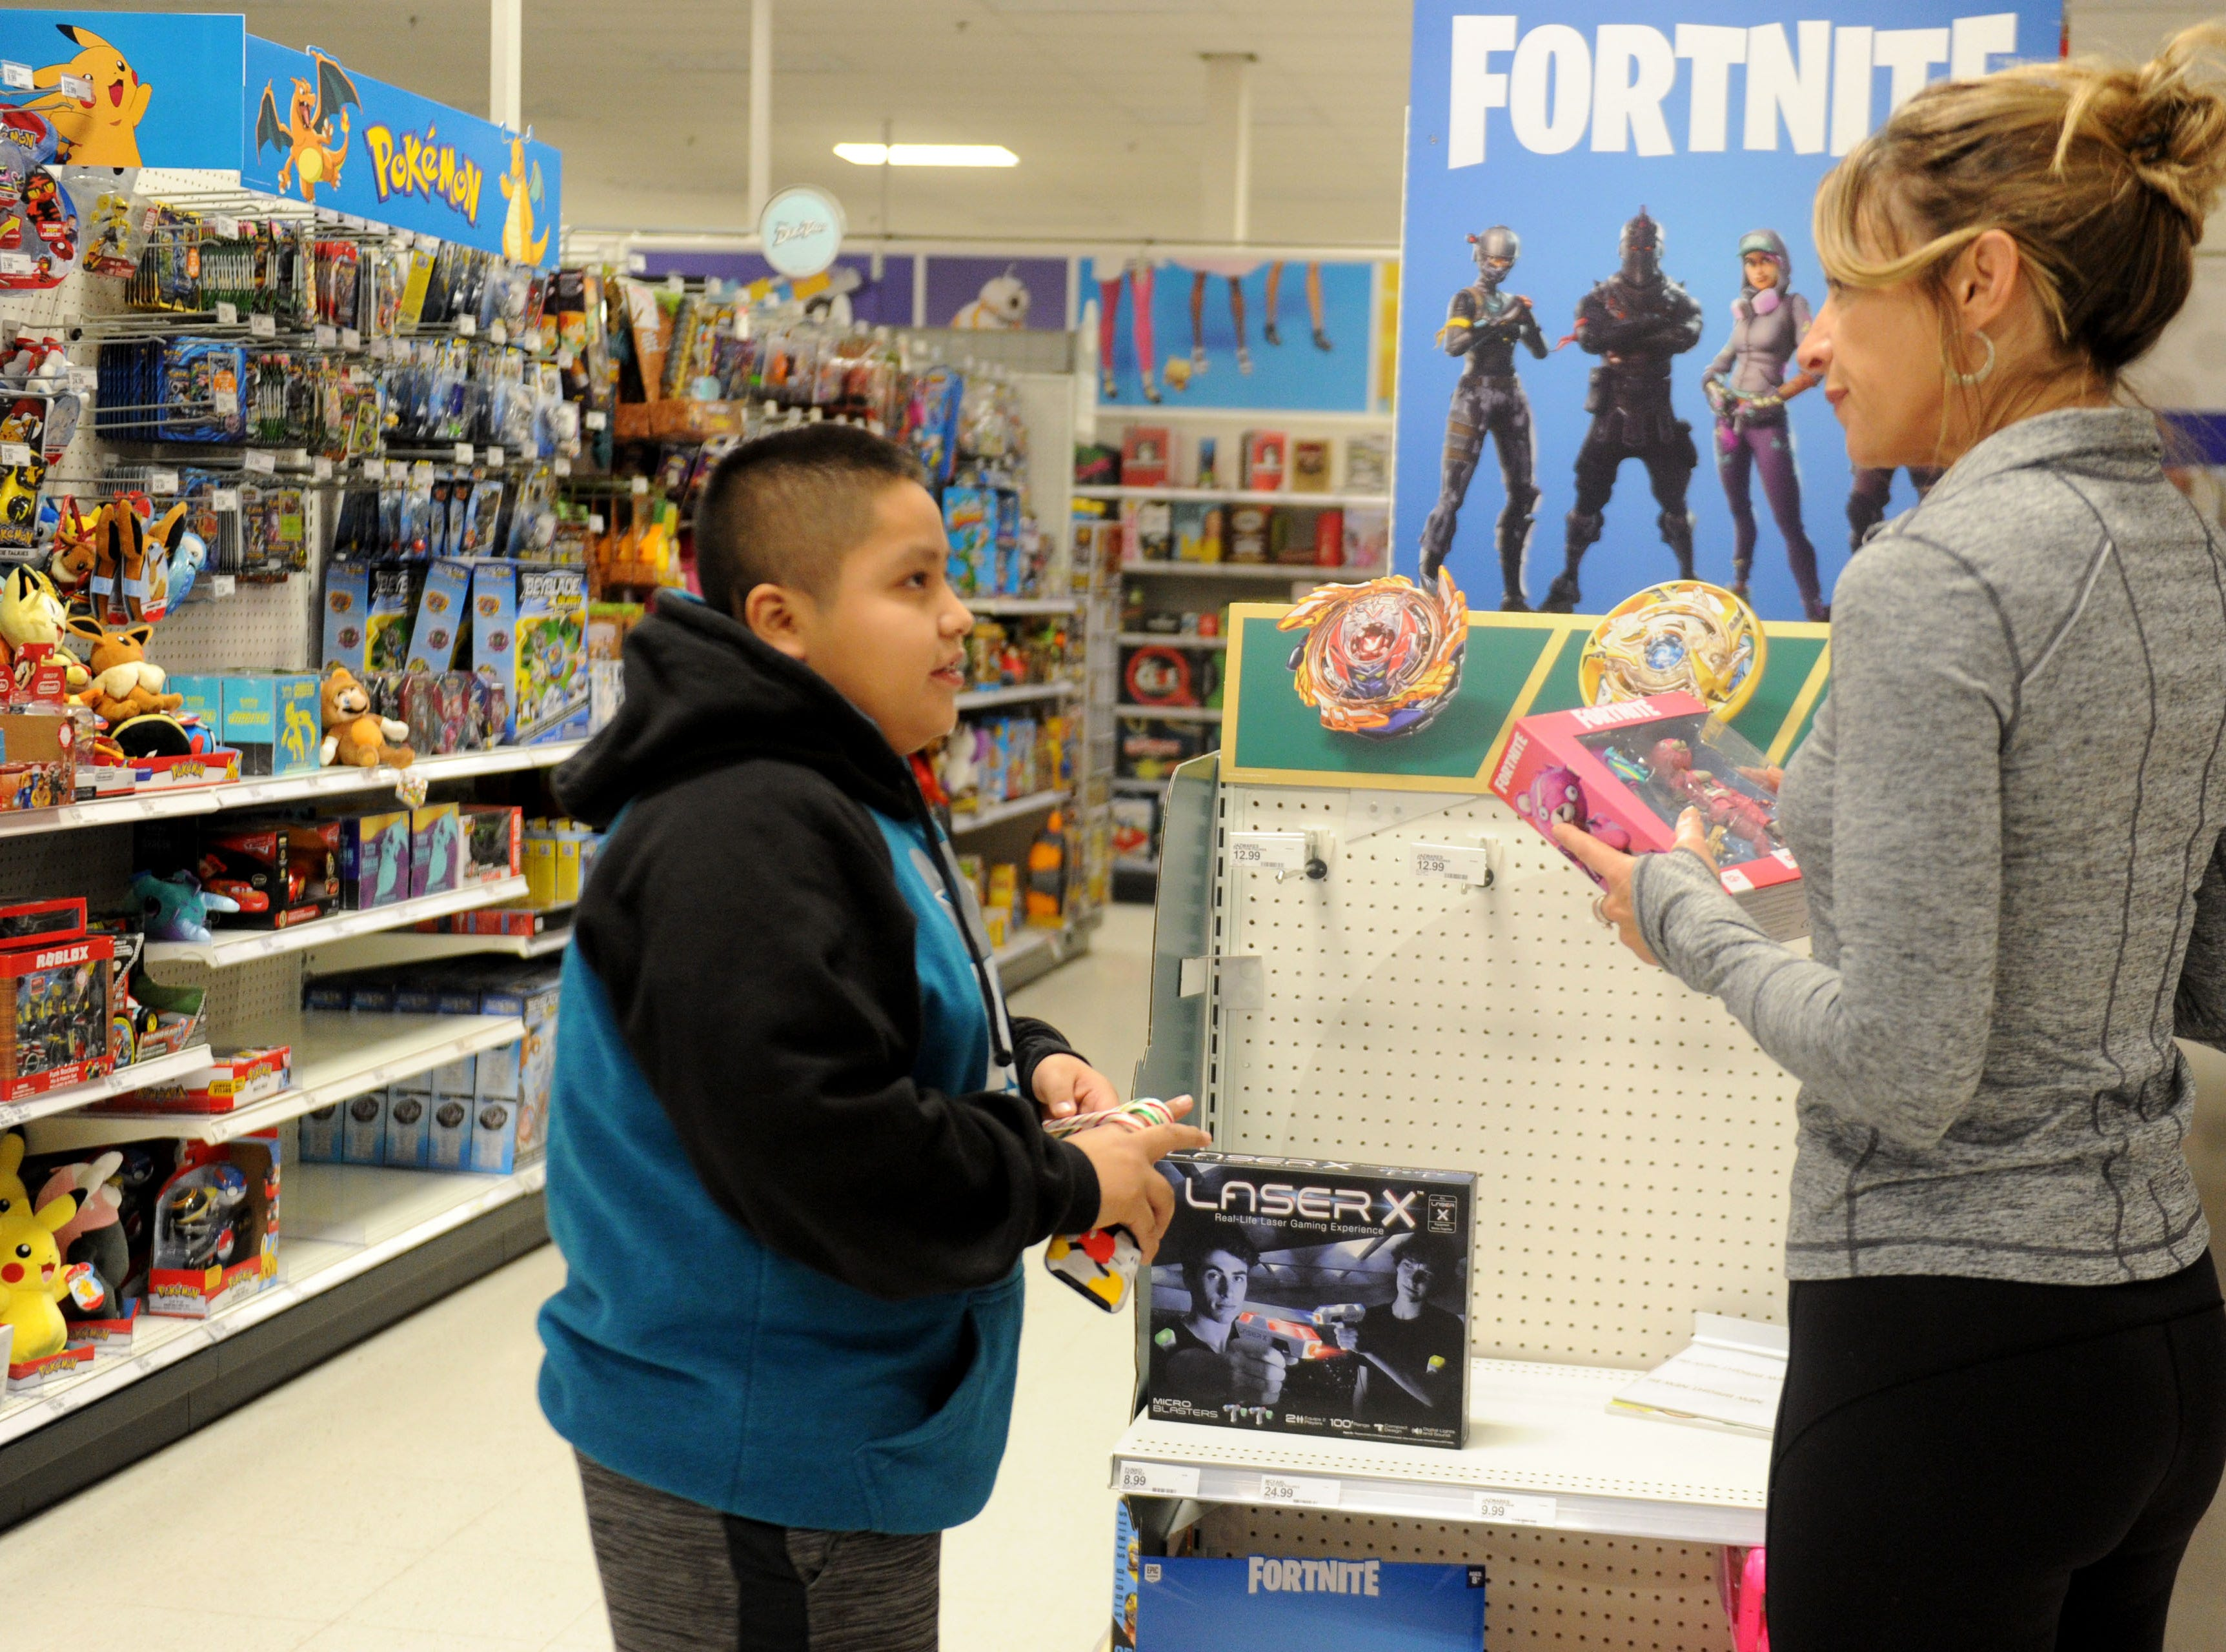 Erin Culbertson, with the Rotary Club of Westlake Village, helps Roberto Aldana shop for toys and Christmas gifts for him and his family. The club hosted a shopping spree at Target for 36 members of the Boys & Girls Club. The children, each with $110 to spend, were paired with 36 volunteers, and they also got two $10 gift cards so they could buy gifts for someone else.